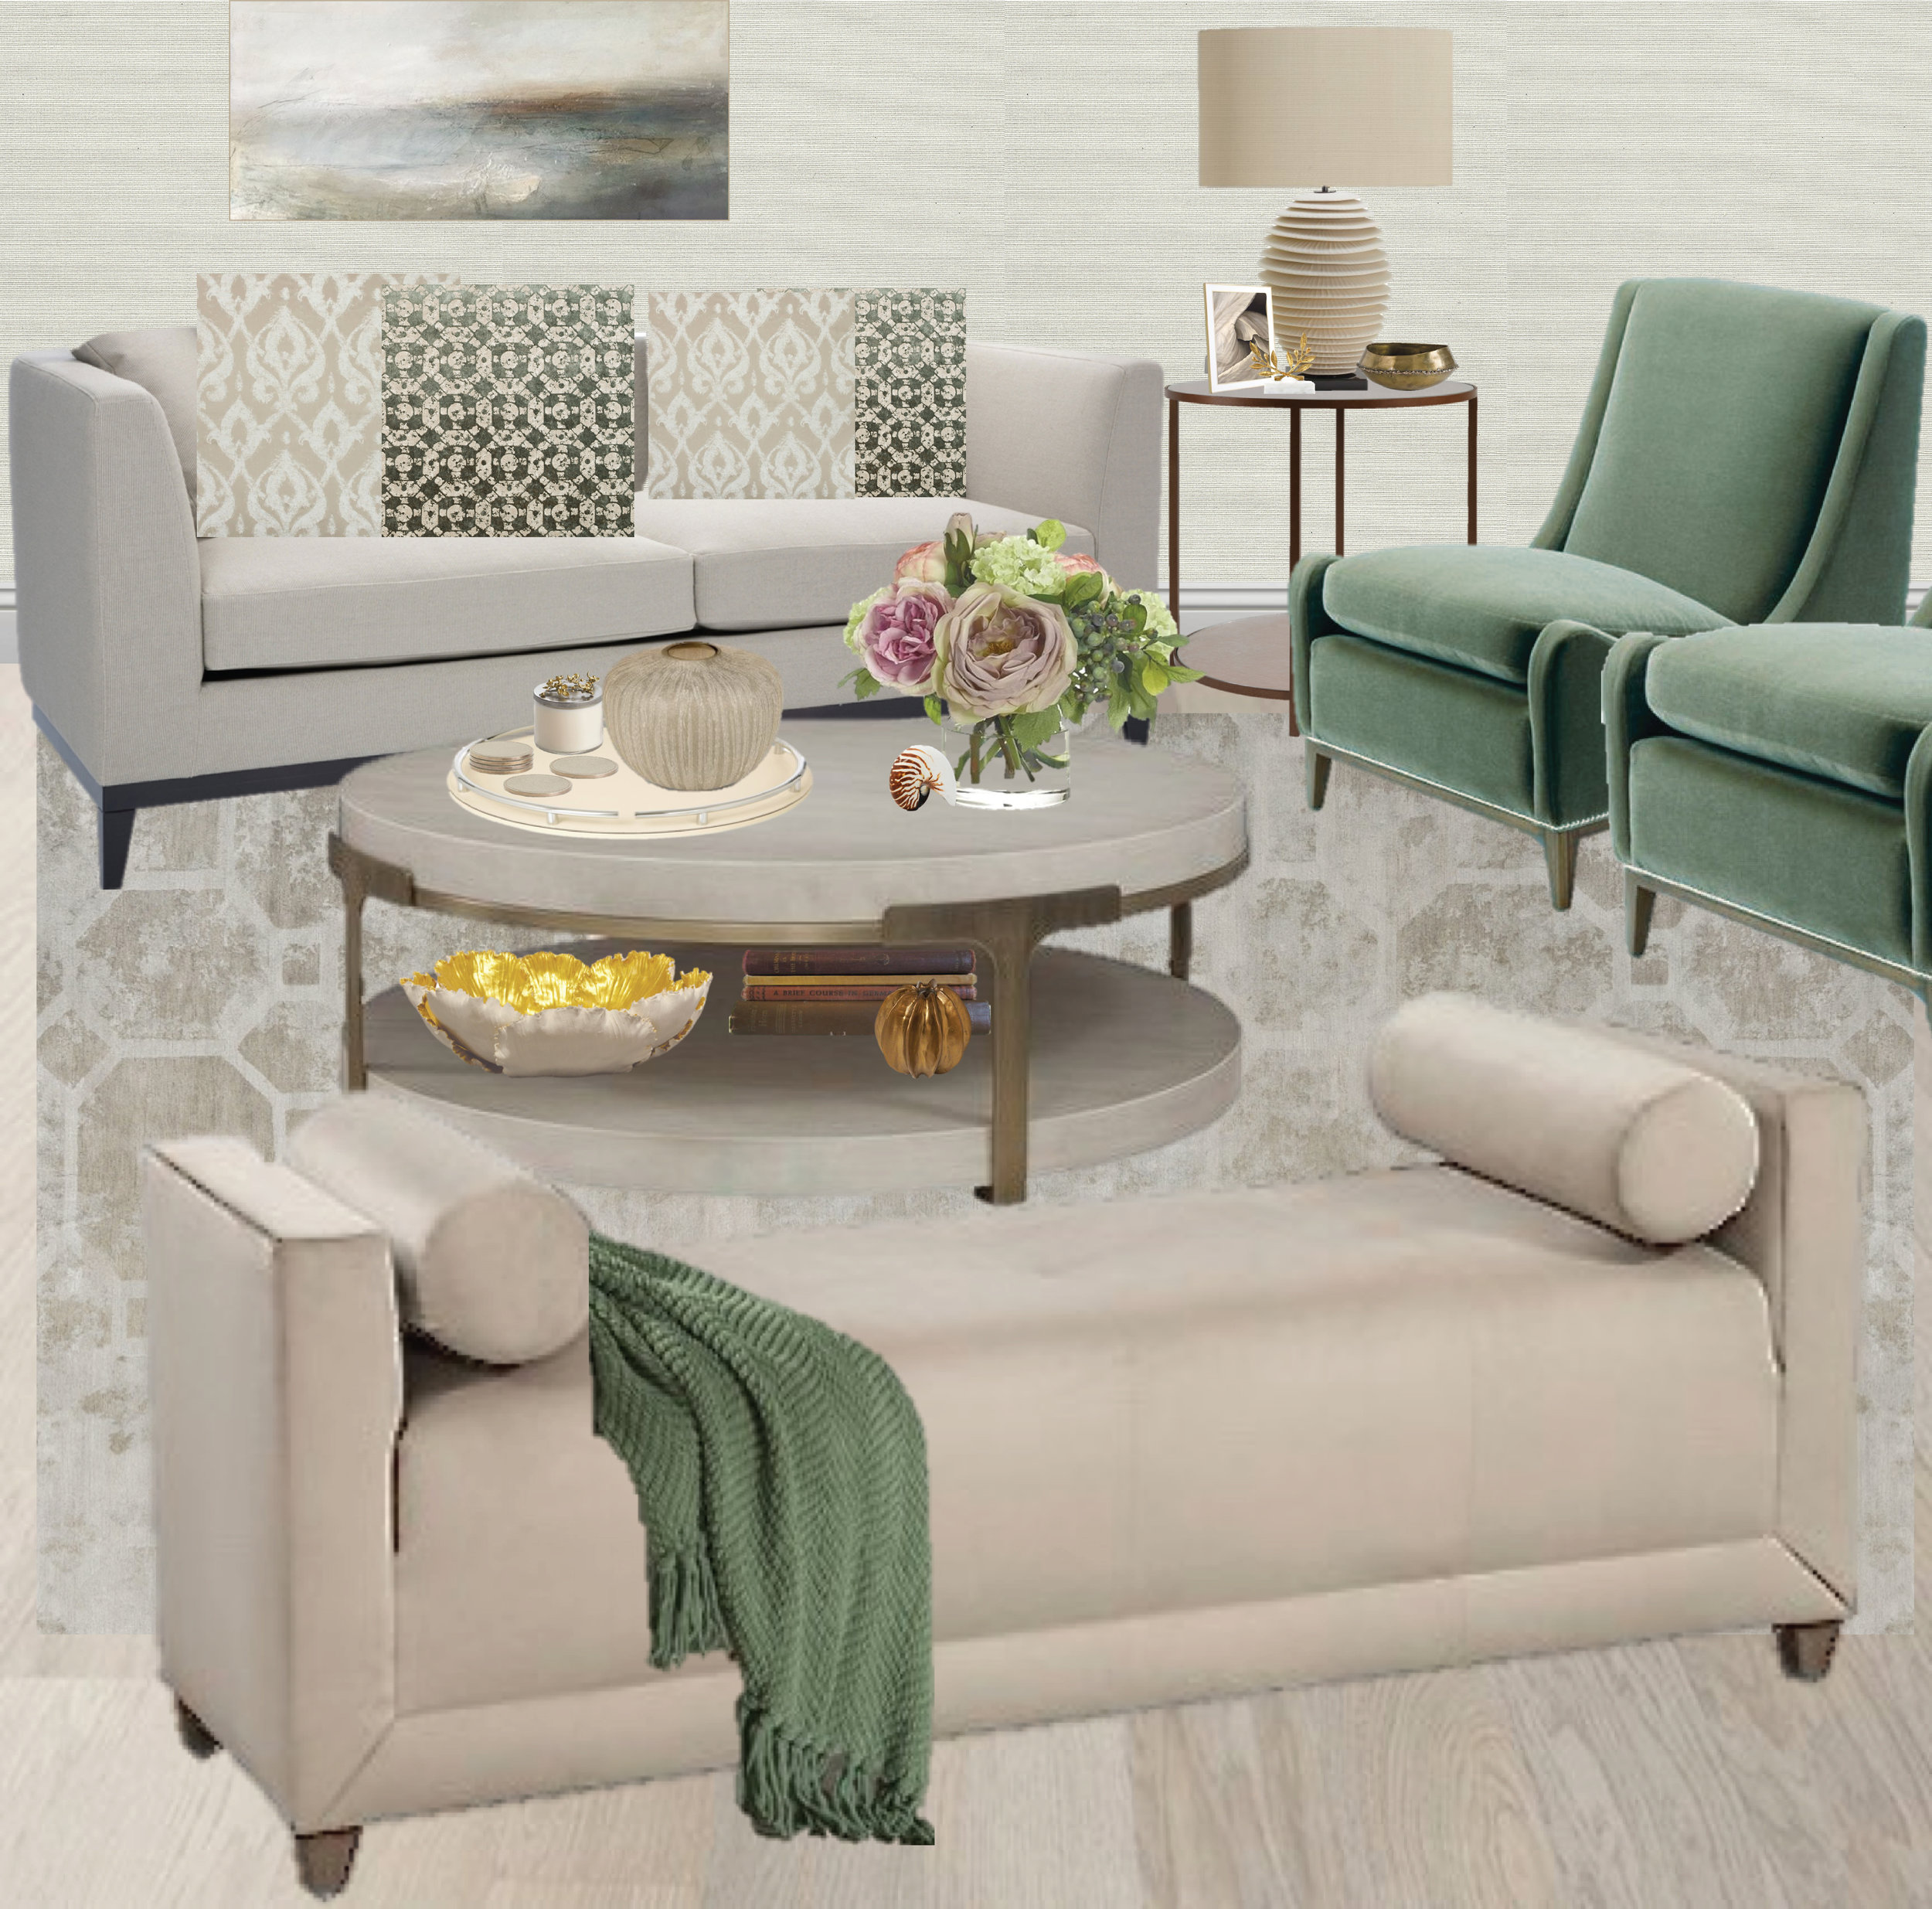 Monochromatic living room, tone on tone, green pillows, pattern ideas, brass coffee table, tufted bench. Subtly Rustic Living Room by Synonymous — Synonymouss.com